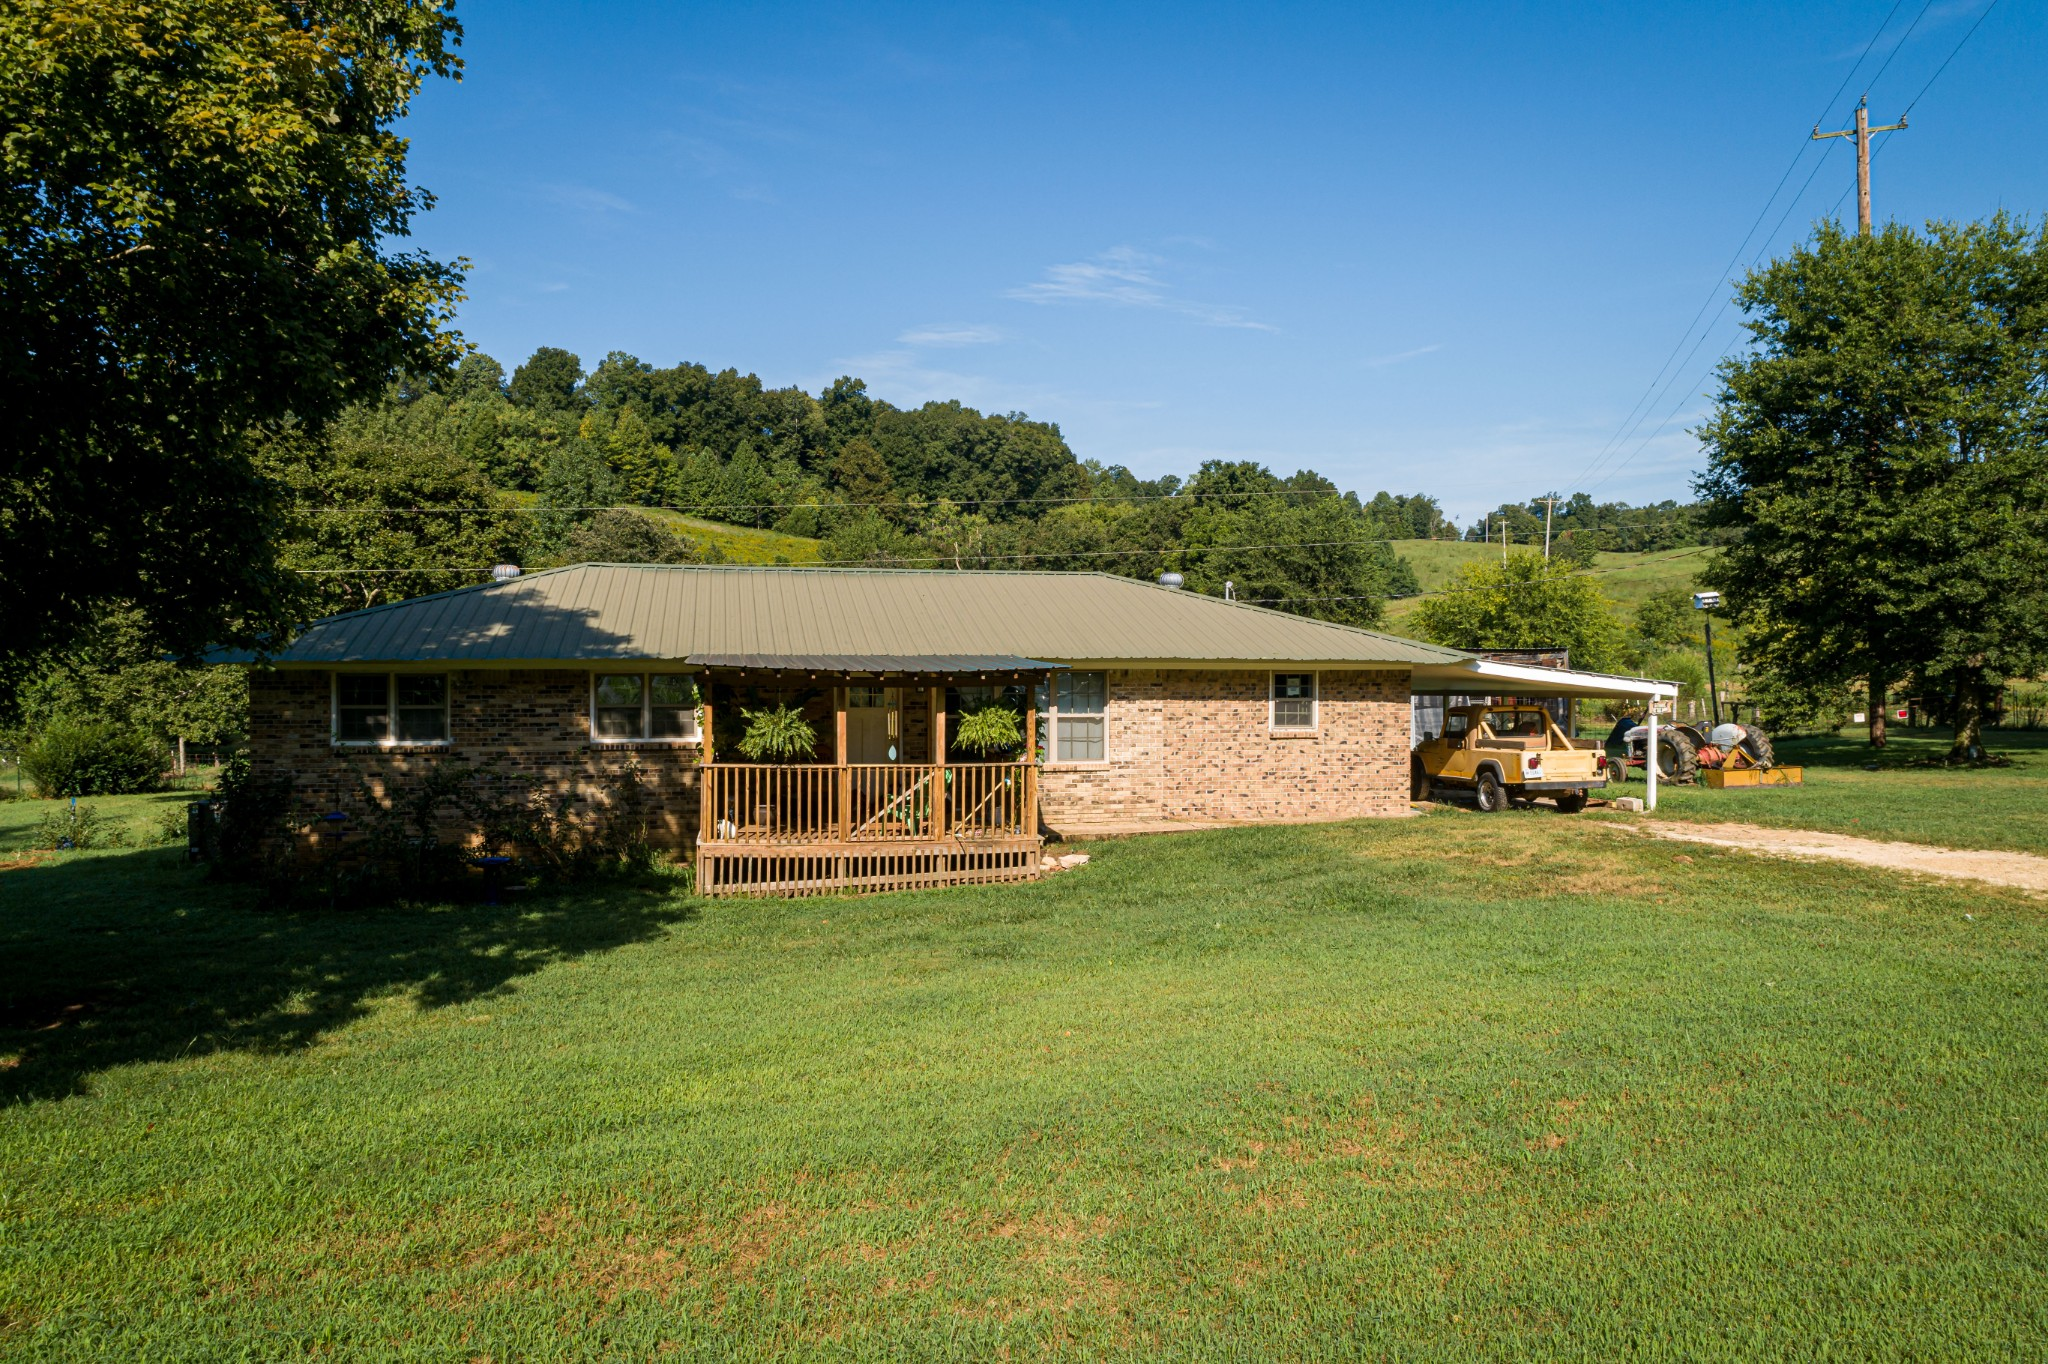 231 Beasley Hollow Rd, Linden, TN 37096 - Linden, TN real estate listing